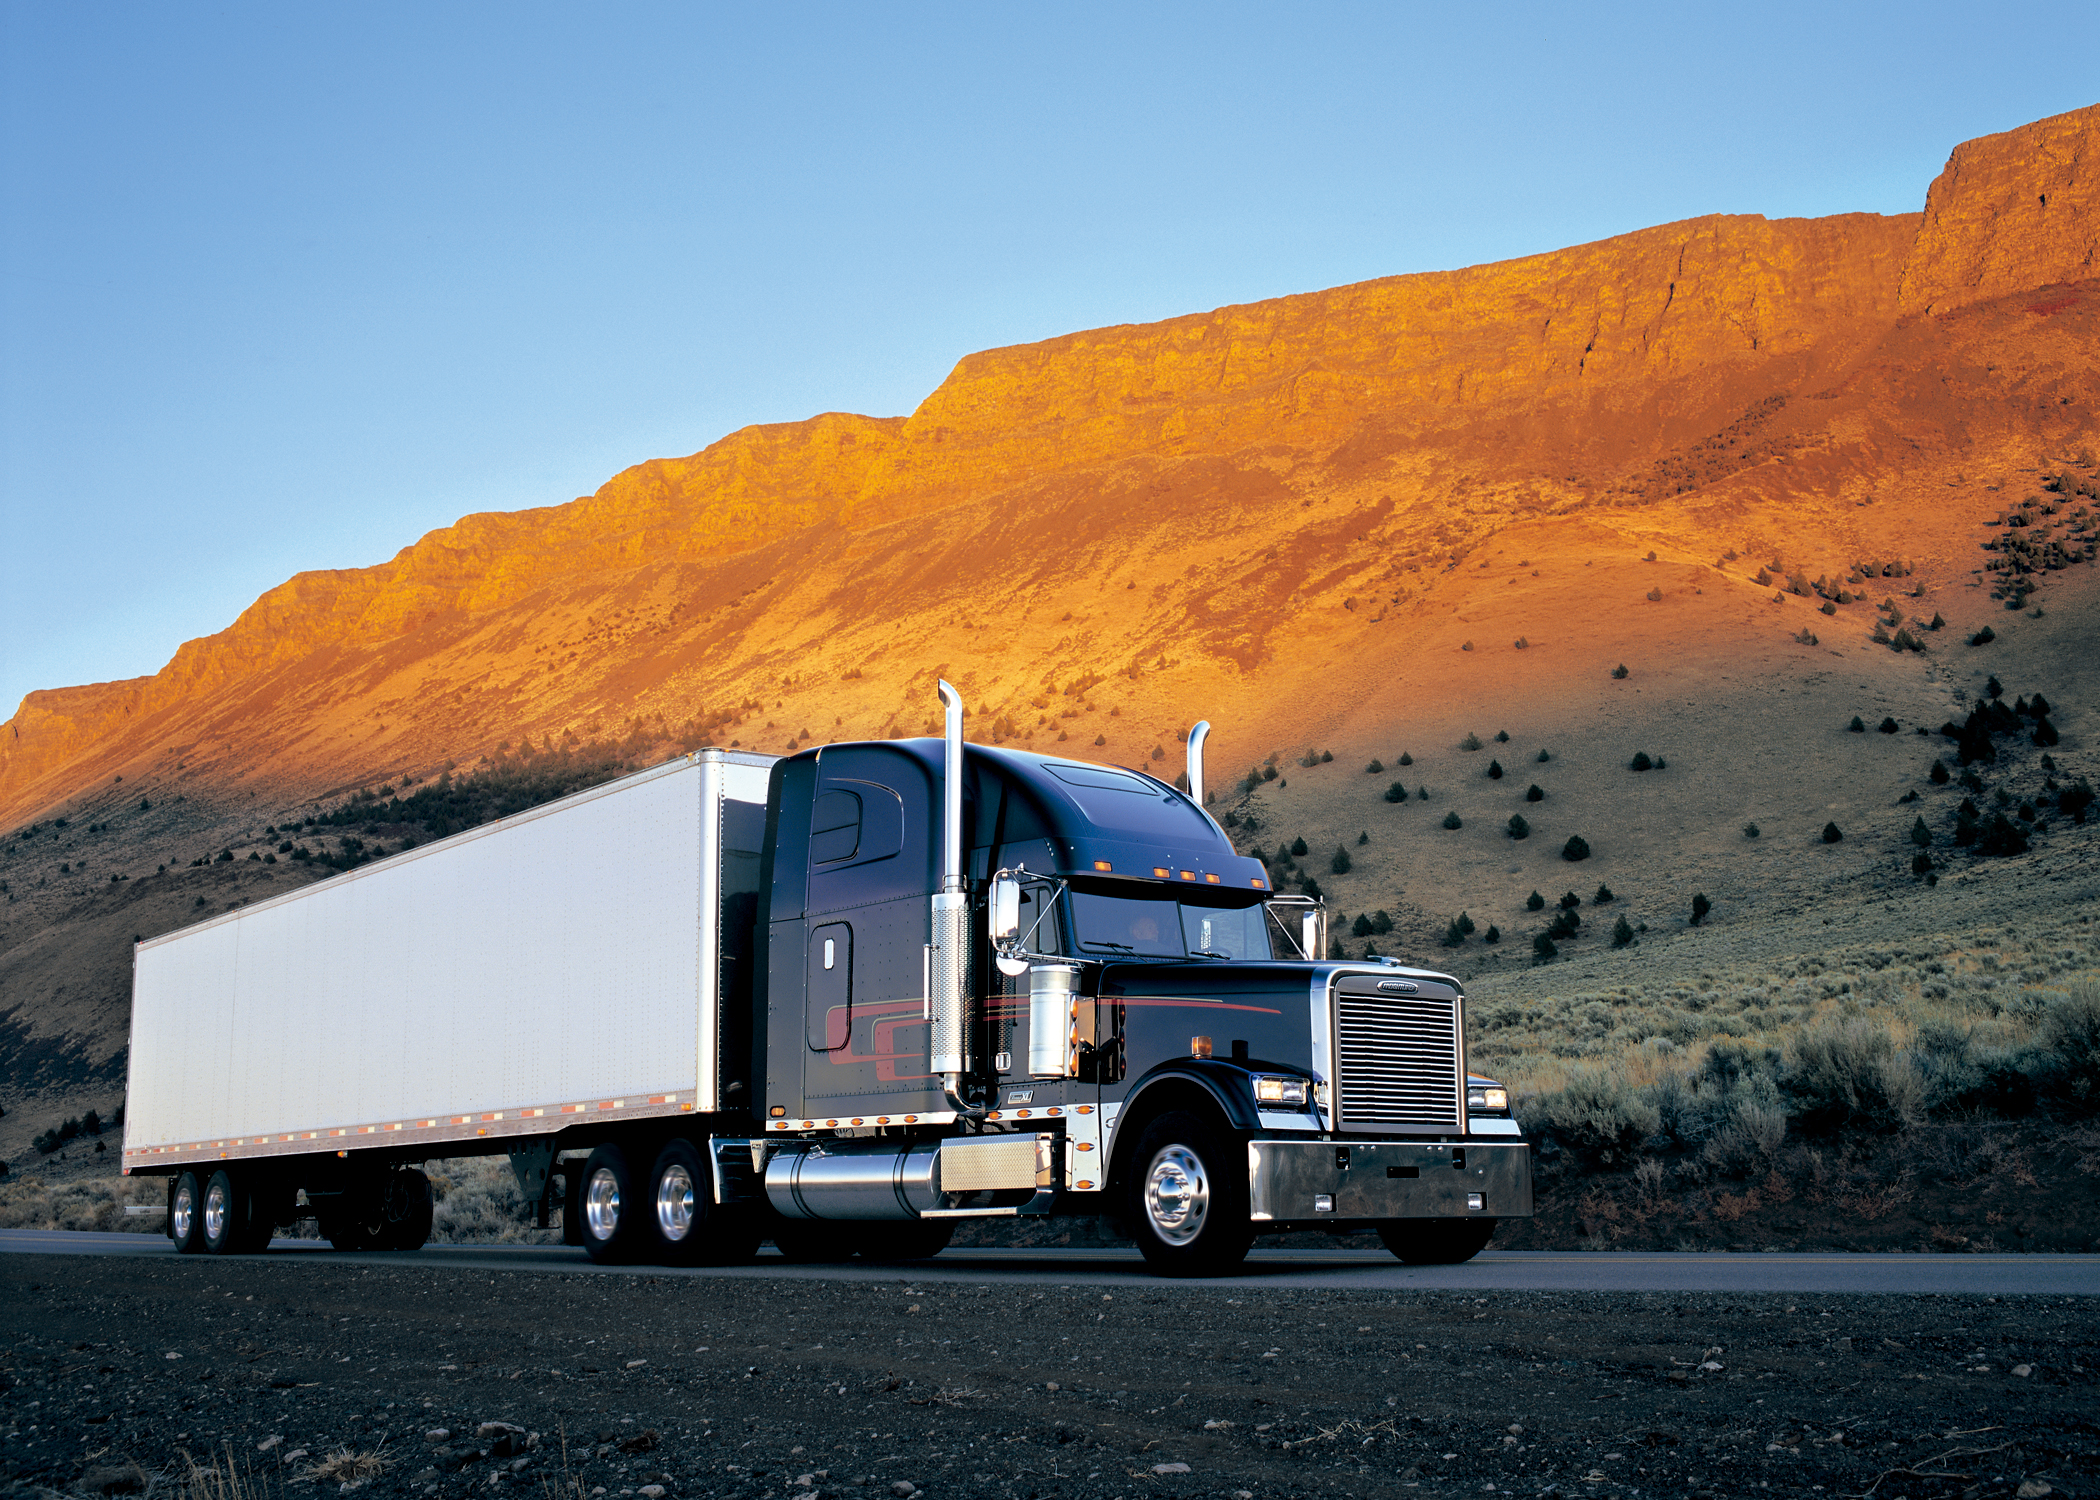 merton truck Merton electronics case study 1) merton electronics is subject to transaction exposure transaction exposure is the gains or losses realized from the settlement of specific transactions that are denominated in a foreign currency.